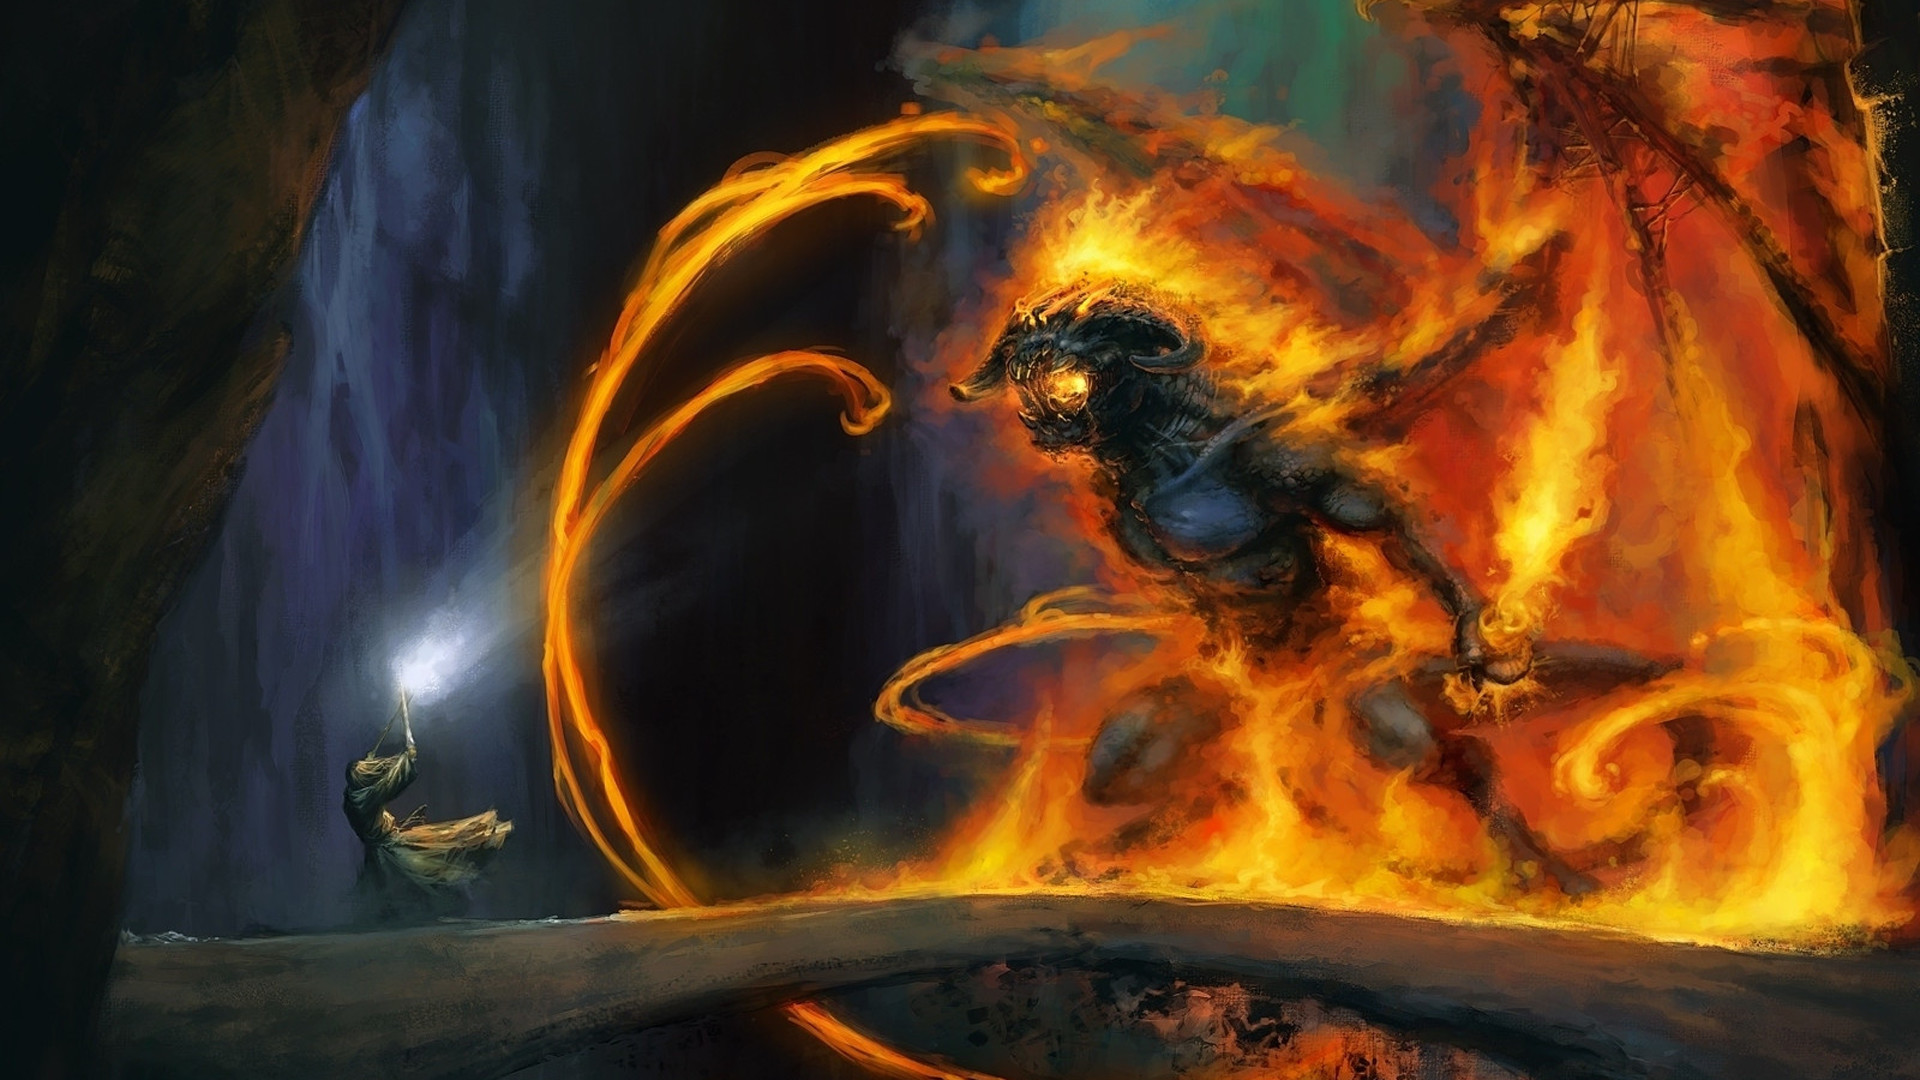 1920x1080 Gandalf and the Balrog